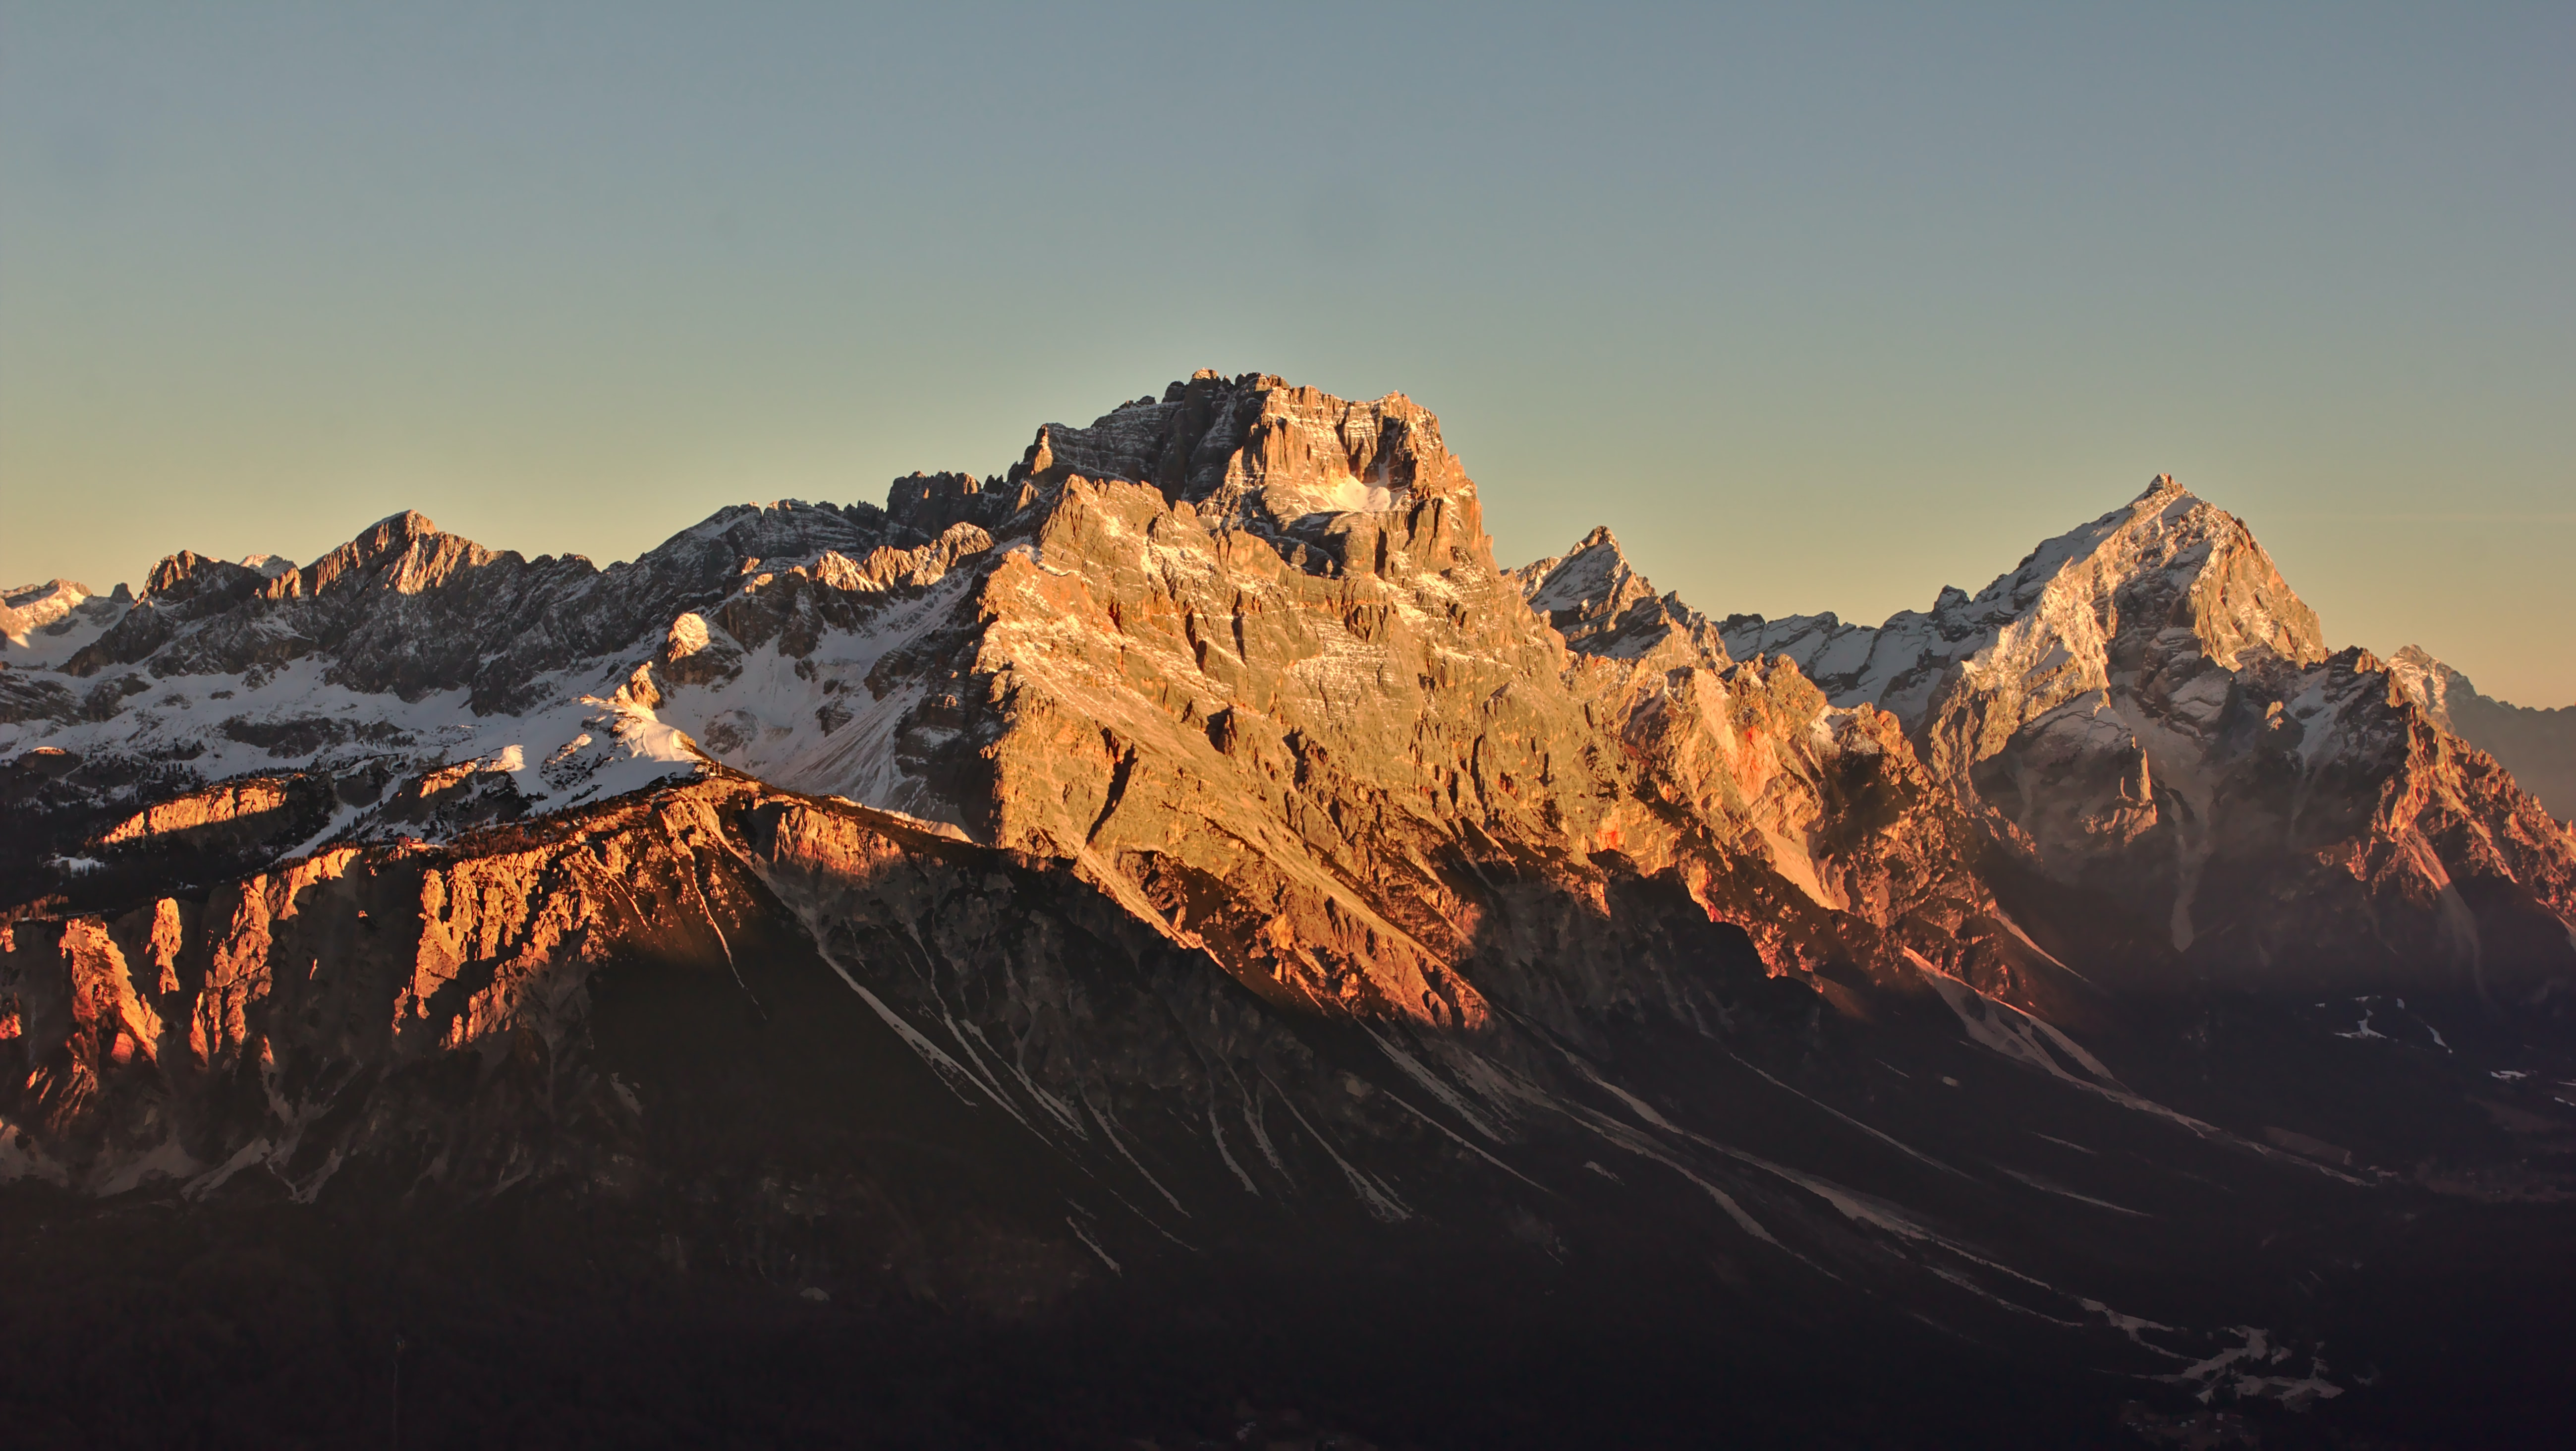 Tall mountain peaks and crests illuminated by the setting sun